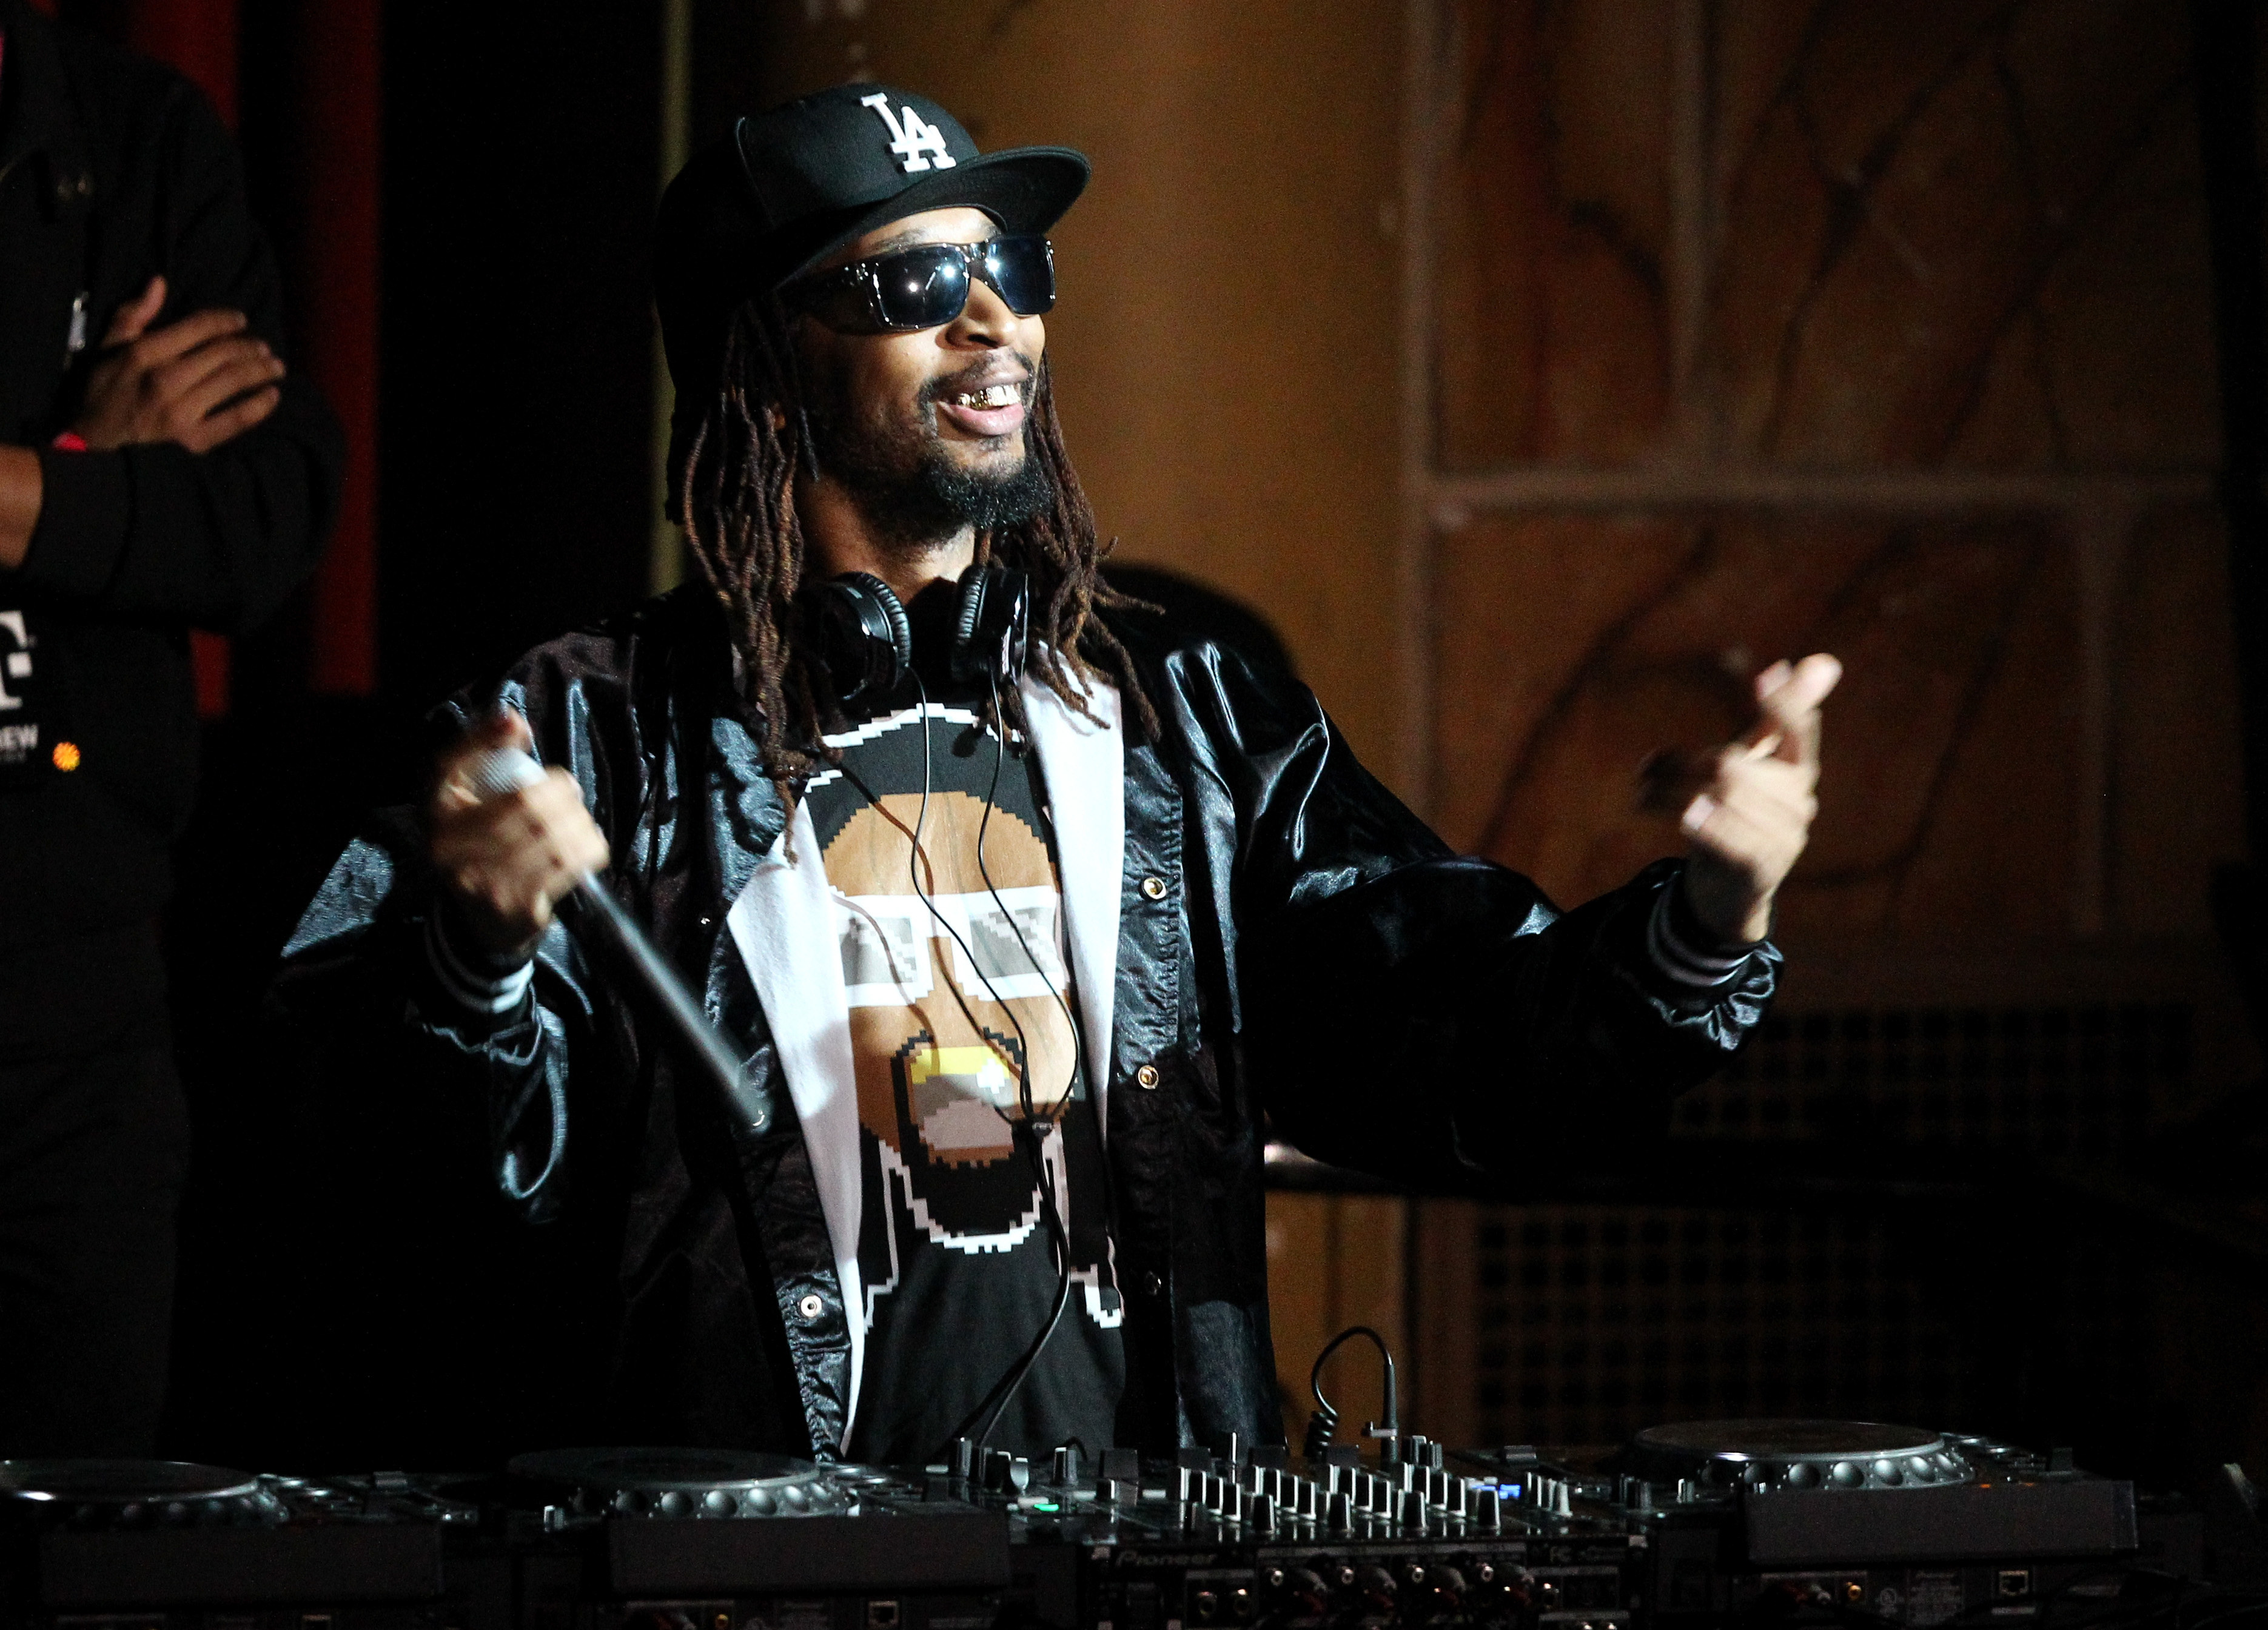 Lil Jon Hd Wallpaper 3740x2688